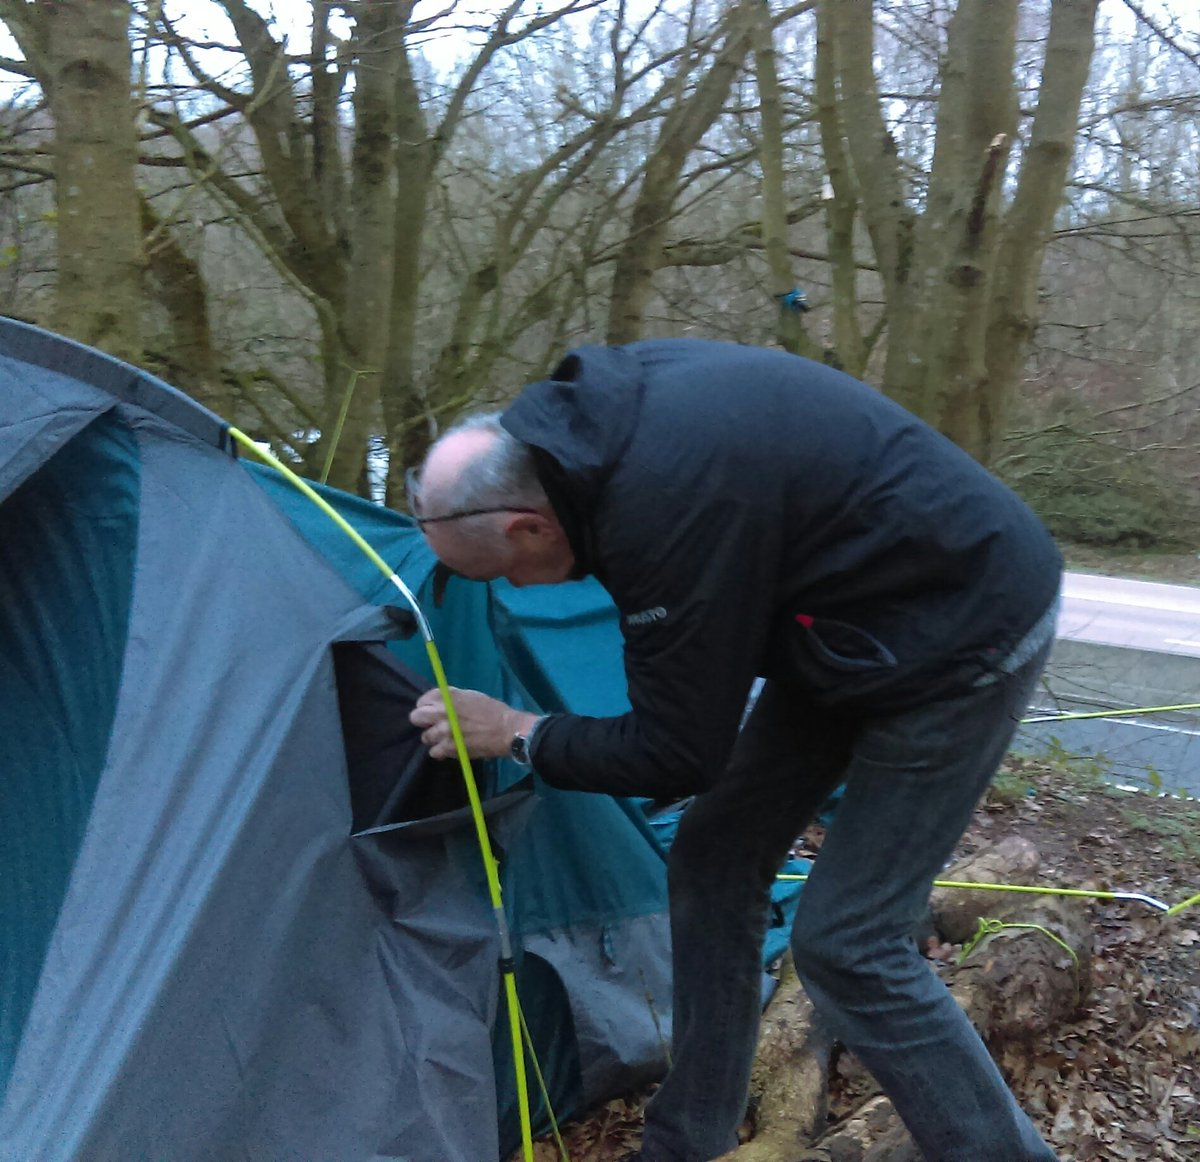 #outreachteam out today in rural areas looking for #roughsleepers and supporting those on the street overnight to get the best outcome for them in the short term #paperandpens  #sleepingbag #warmandcosy  #hotdrink  #tellingyourstory  #offeringhelp  @shrewsburyark  @ShropCouncilpic.twitter.com/4kjwzzWefy